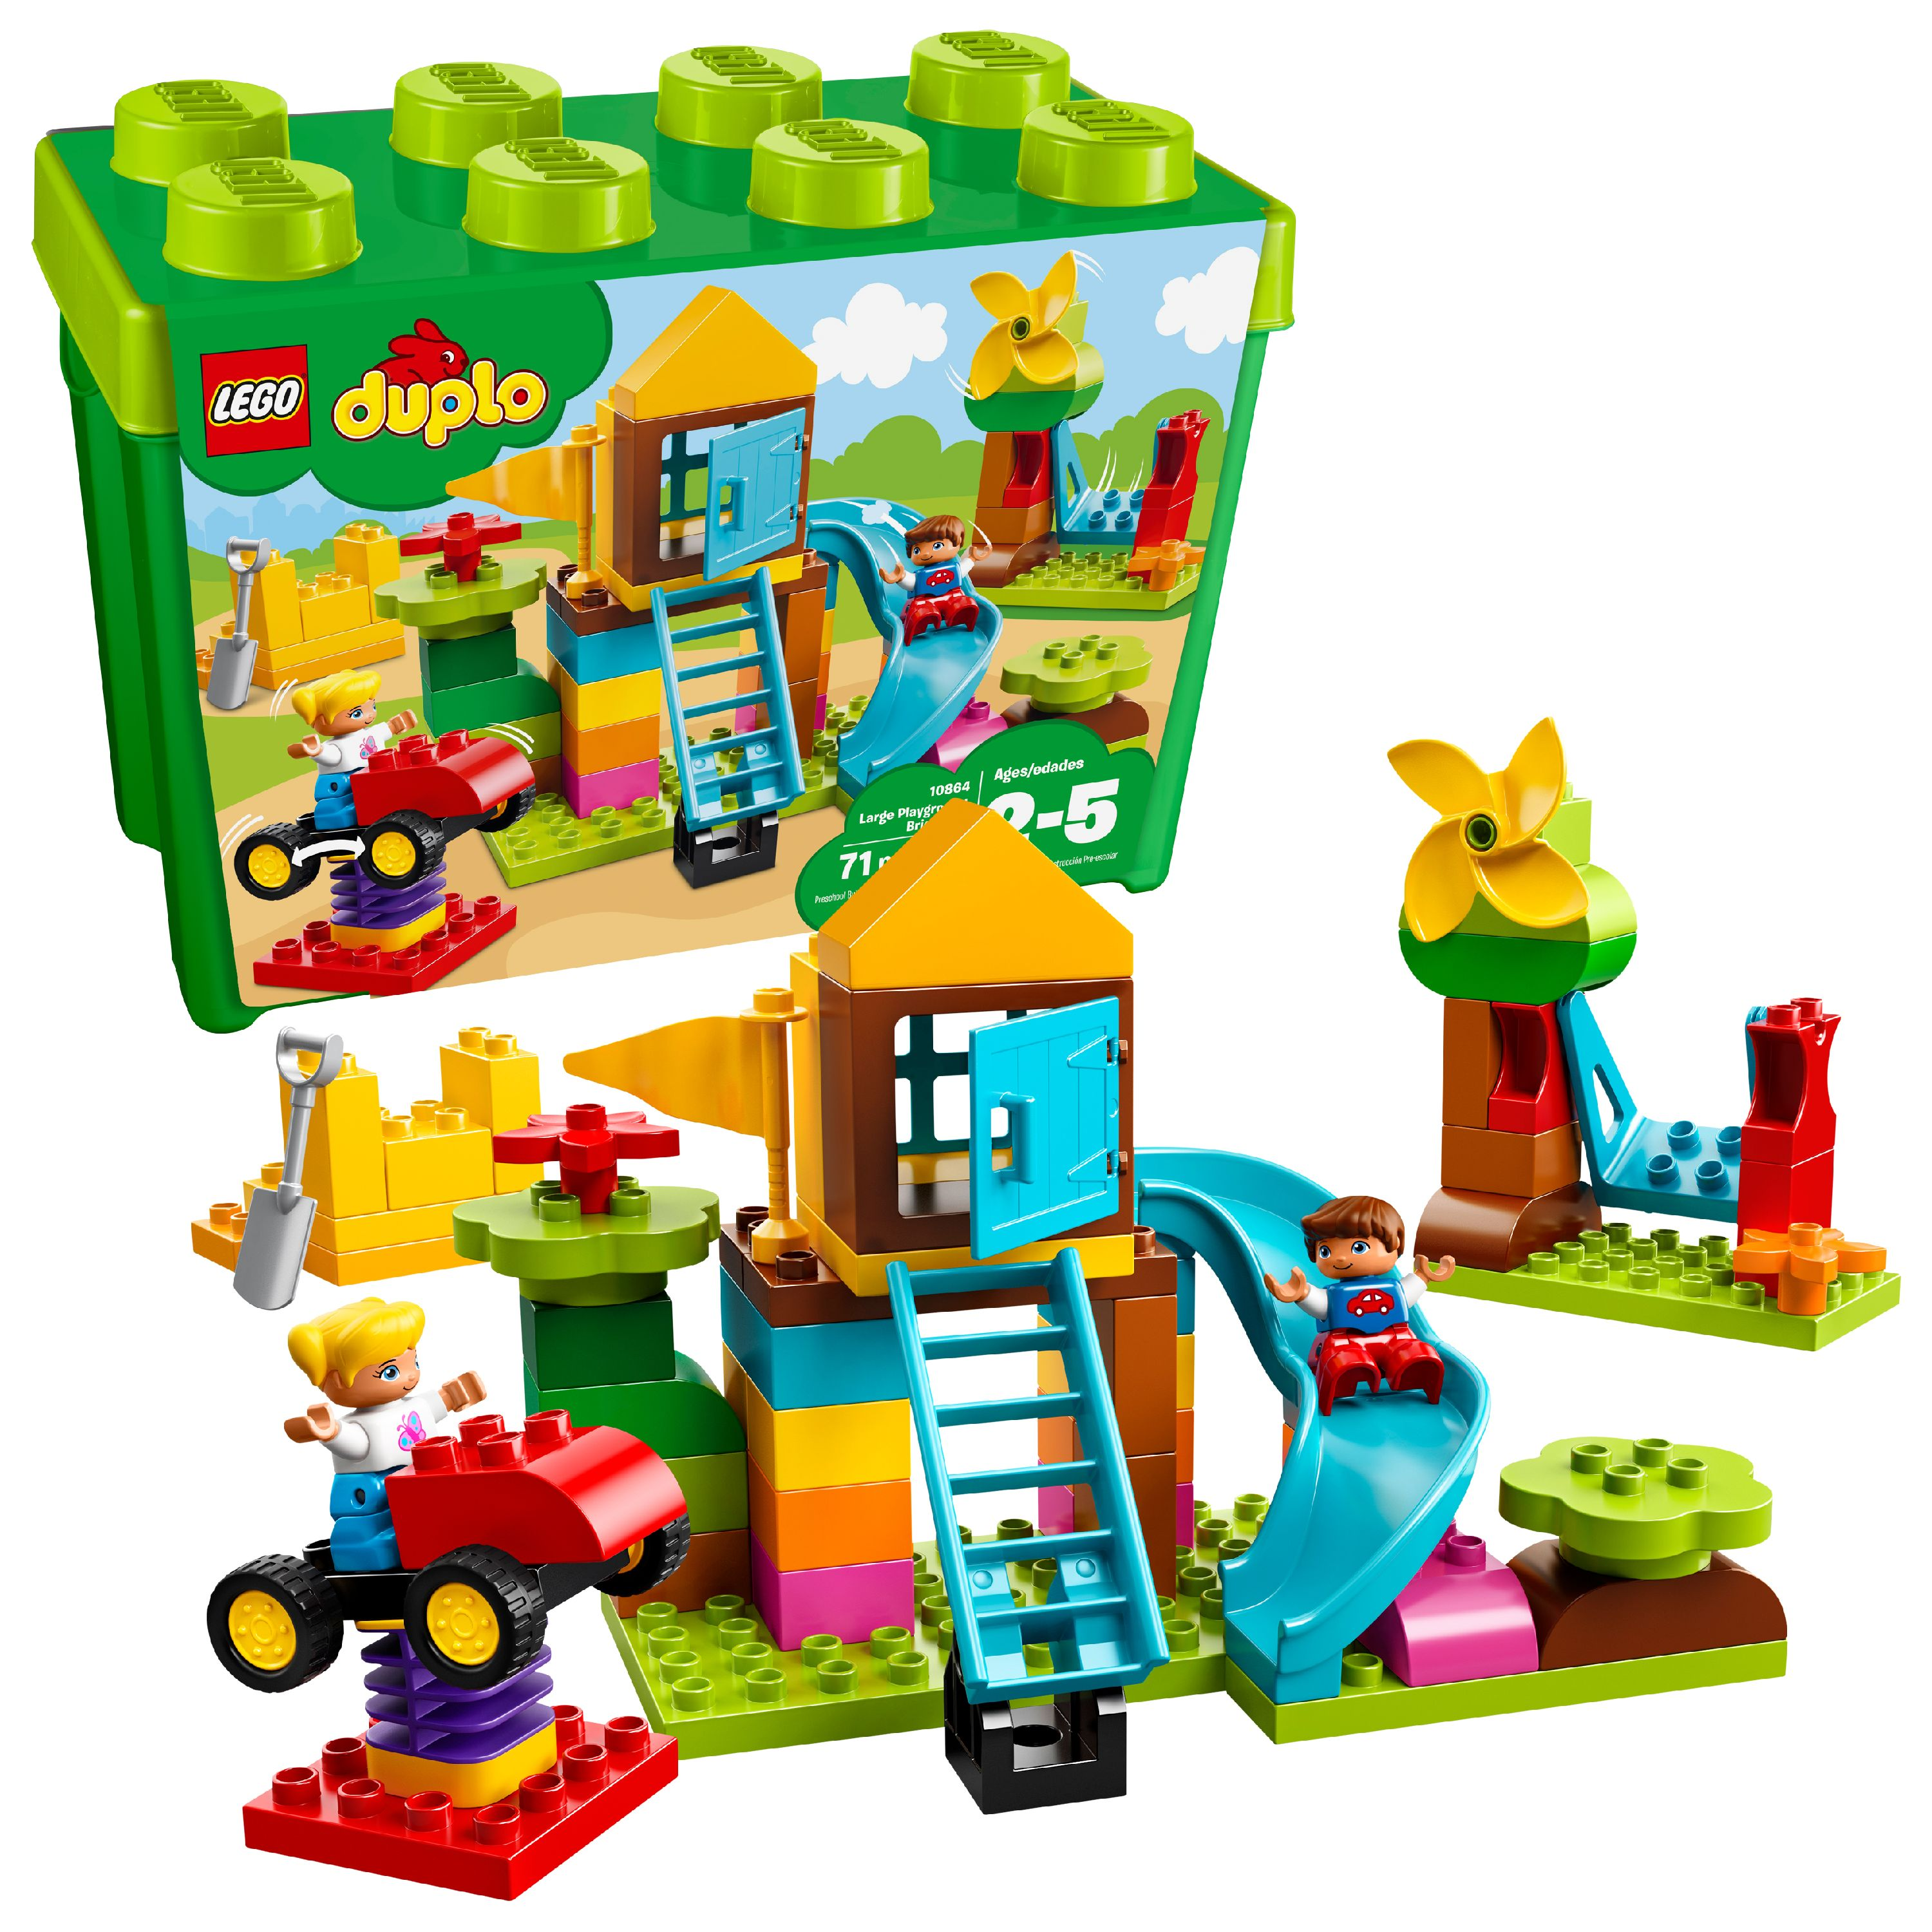 LEGO Duplo Creative Play Large Green Building Plate Kit Kids Play Plastic Toy